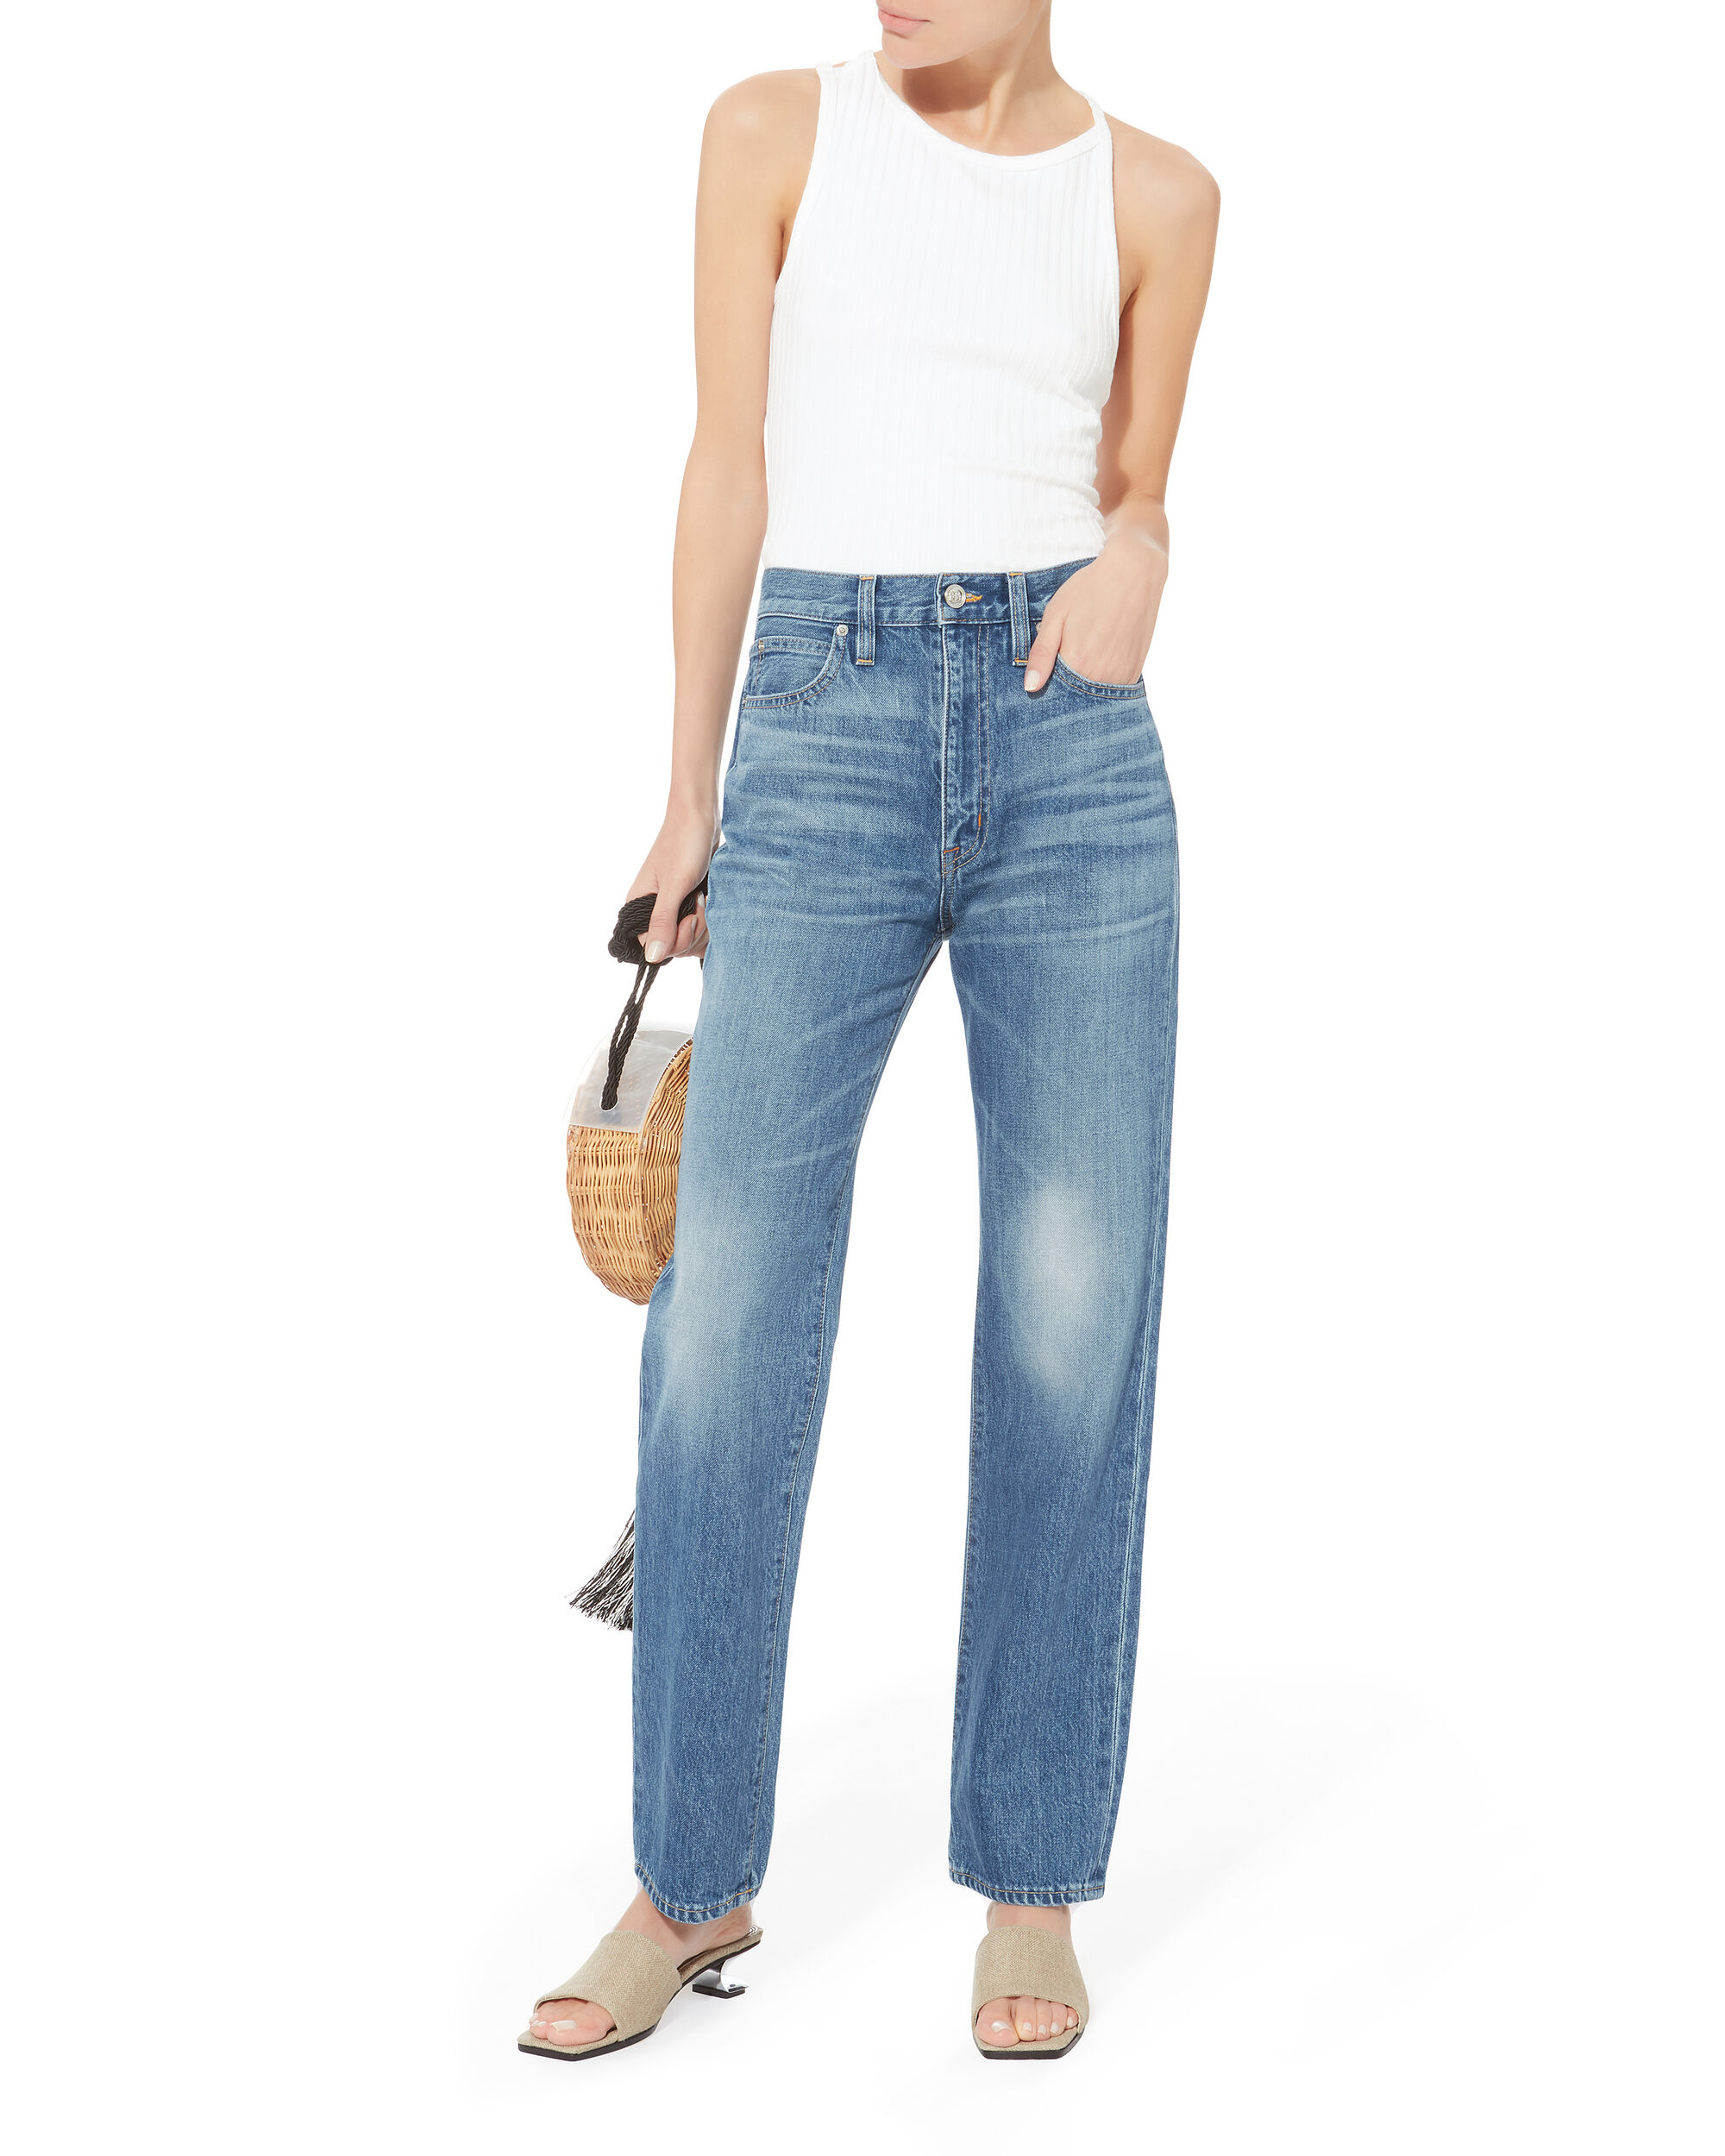 London Super High Straight Jeans, DENIM-LT, hi-res